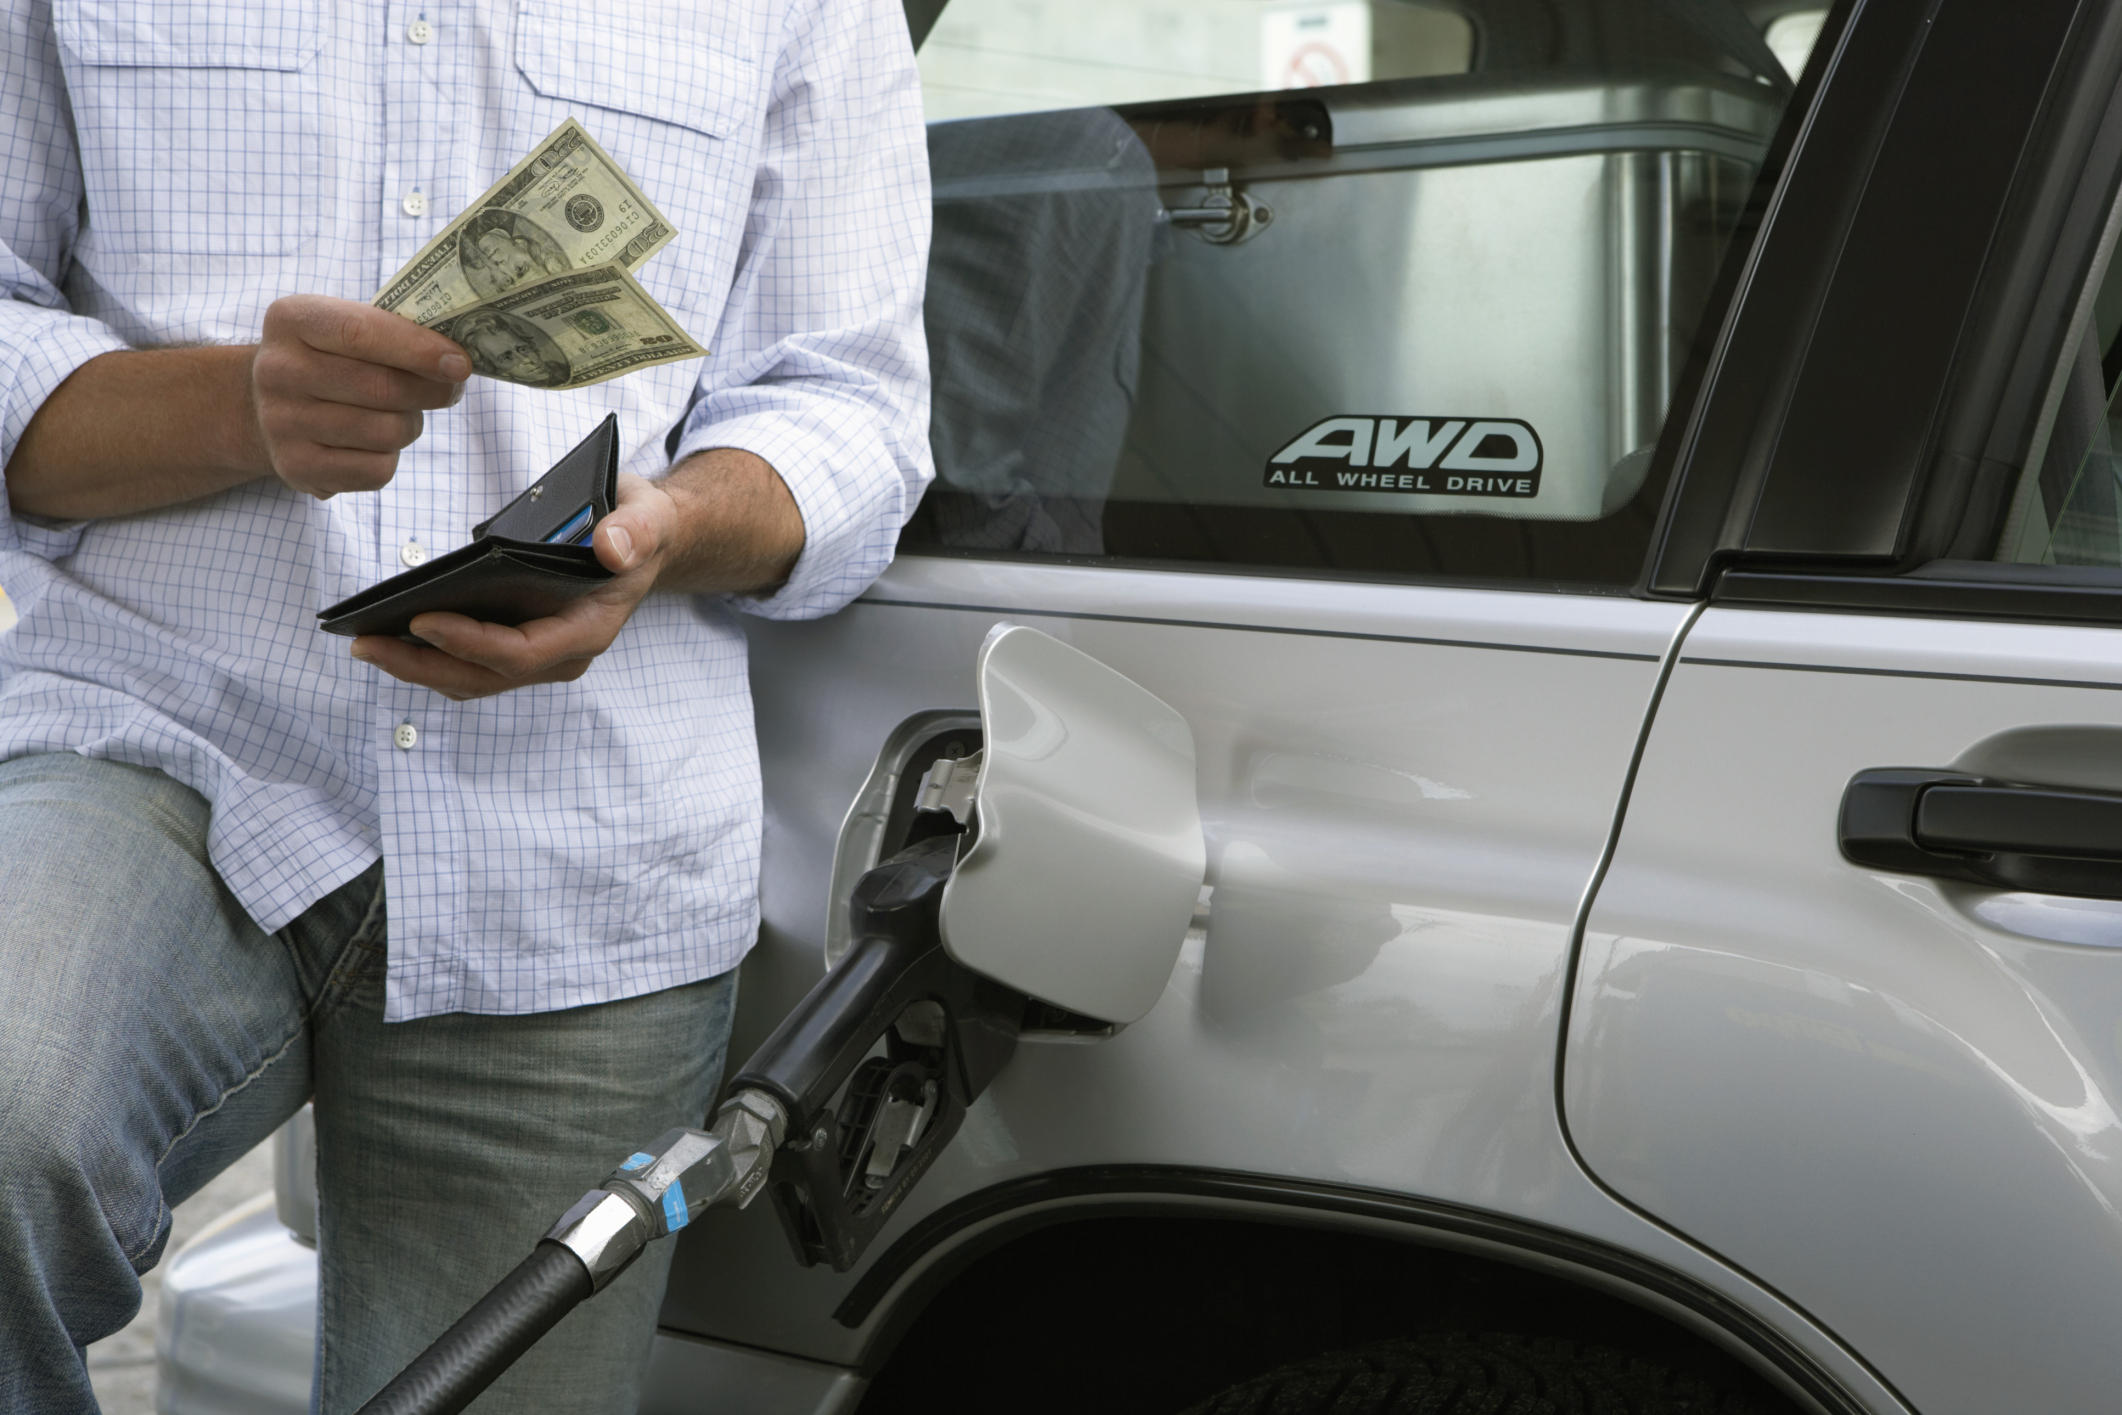 Texas retail gasoline prices down 3 cents this week